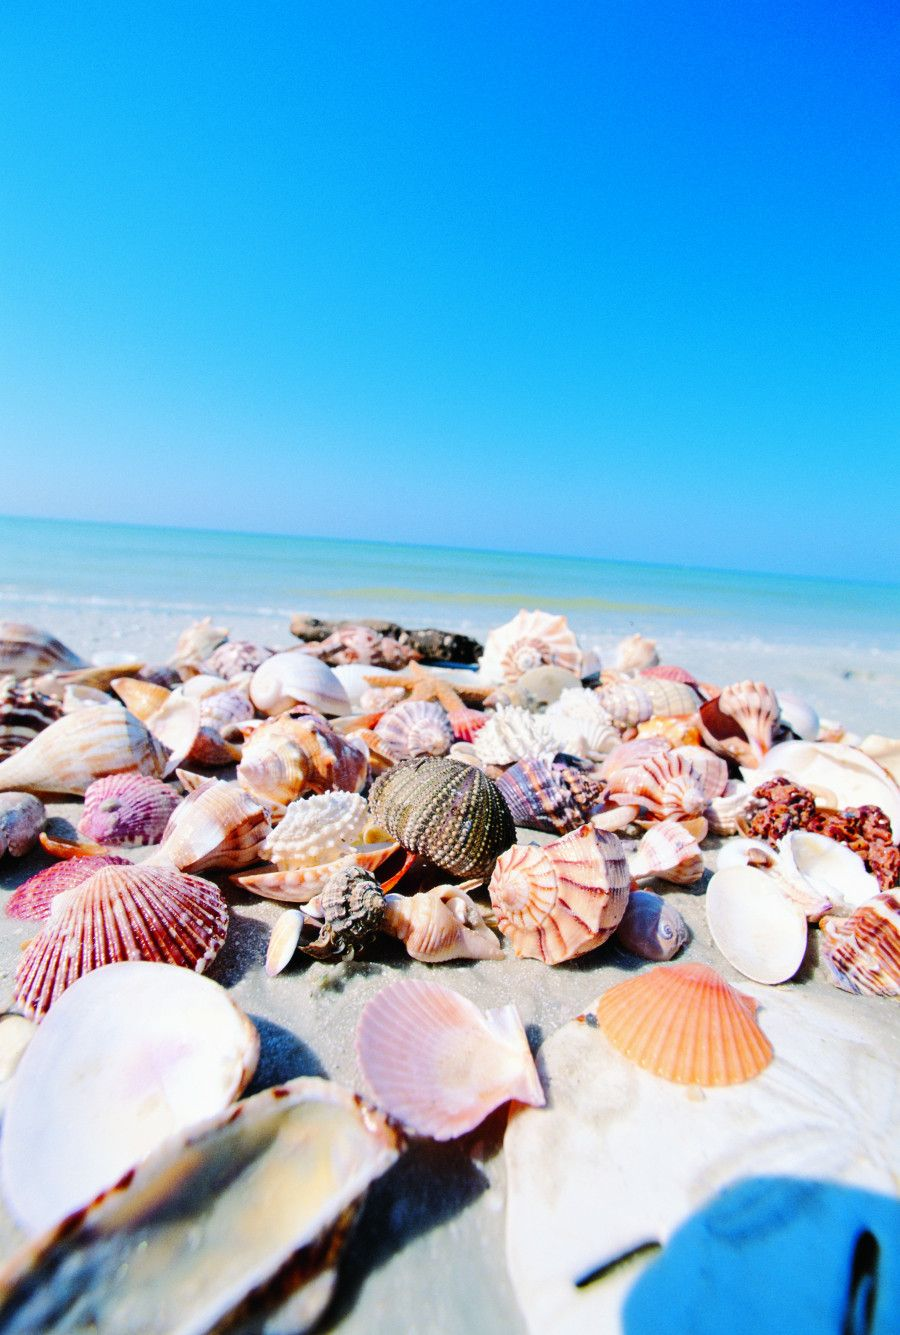 8 Experiences To Have On The Beaches Of Fort Myers Sanibel